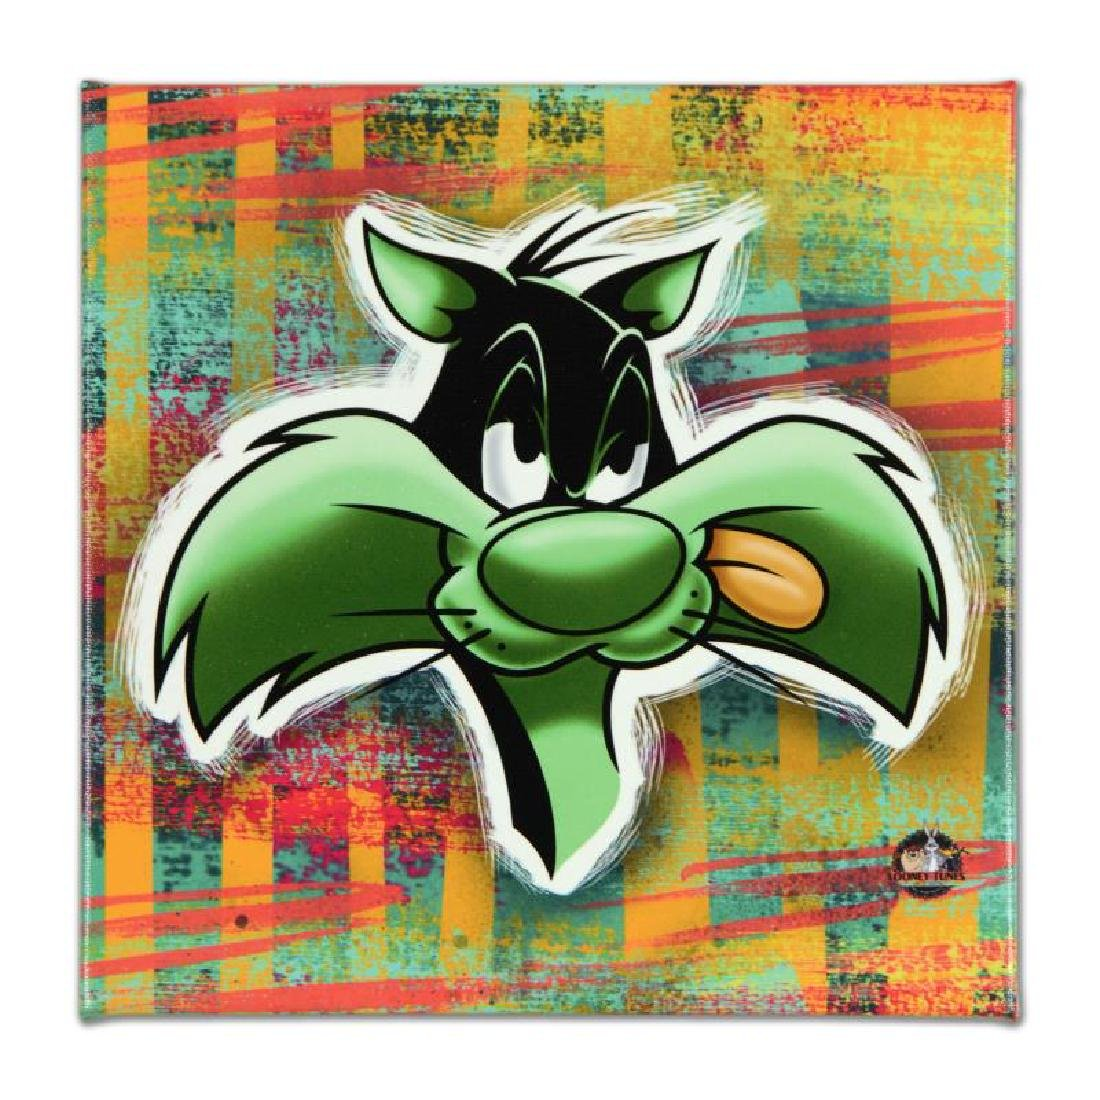 Sylvester by Looney Tunes